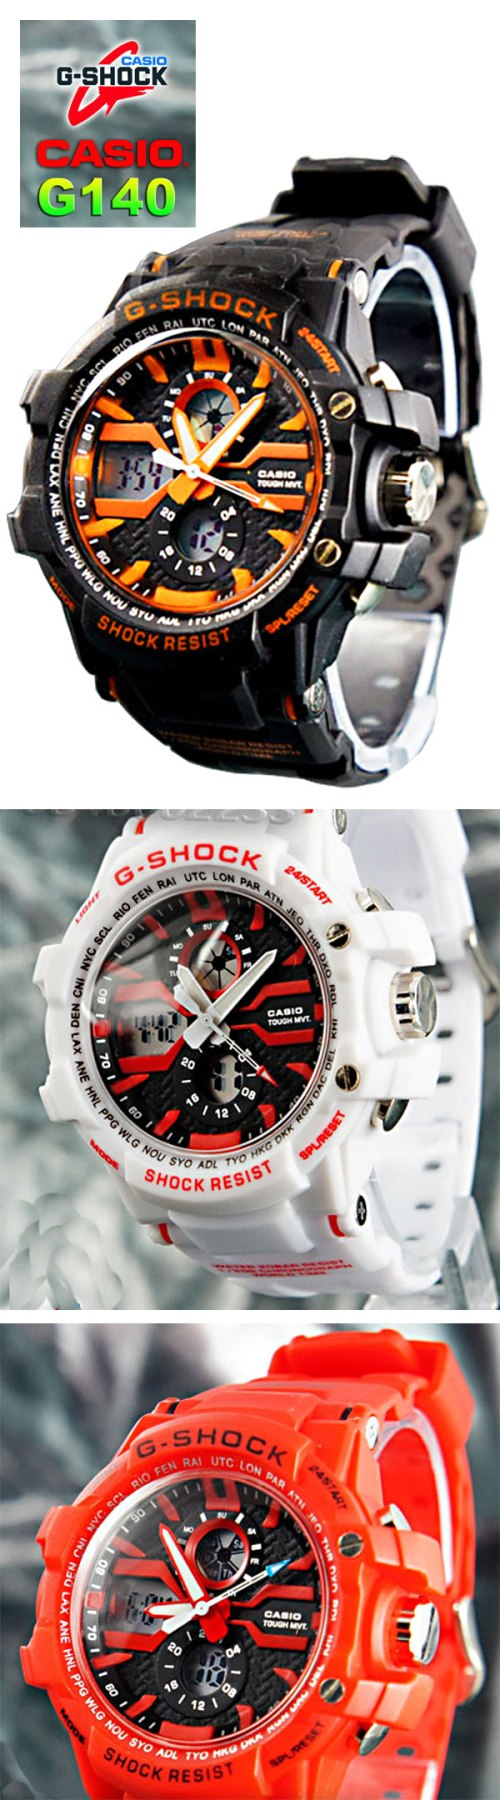 ga-140 fake g-shocks, bootleg watches, counterfeit wristwatch, phony gshock, replica g-shock, knock-off, illegal,  sham scam, forgery bogus infringement